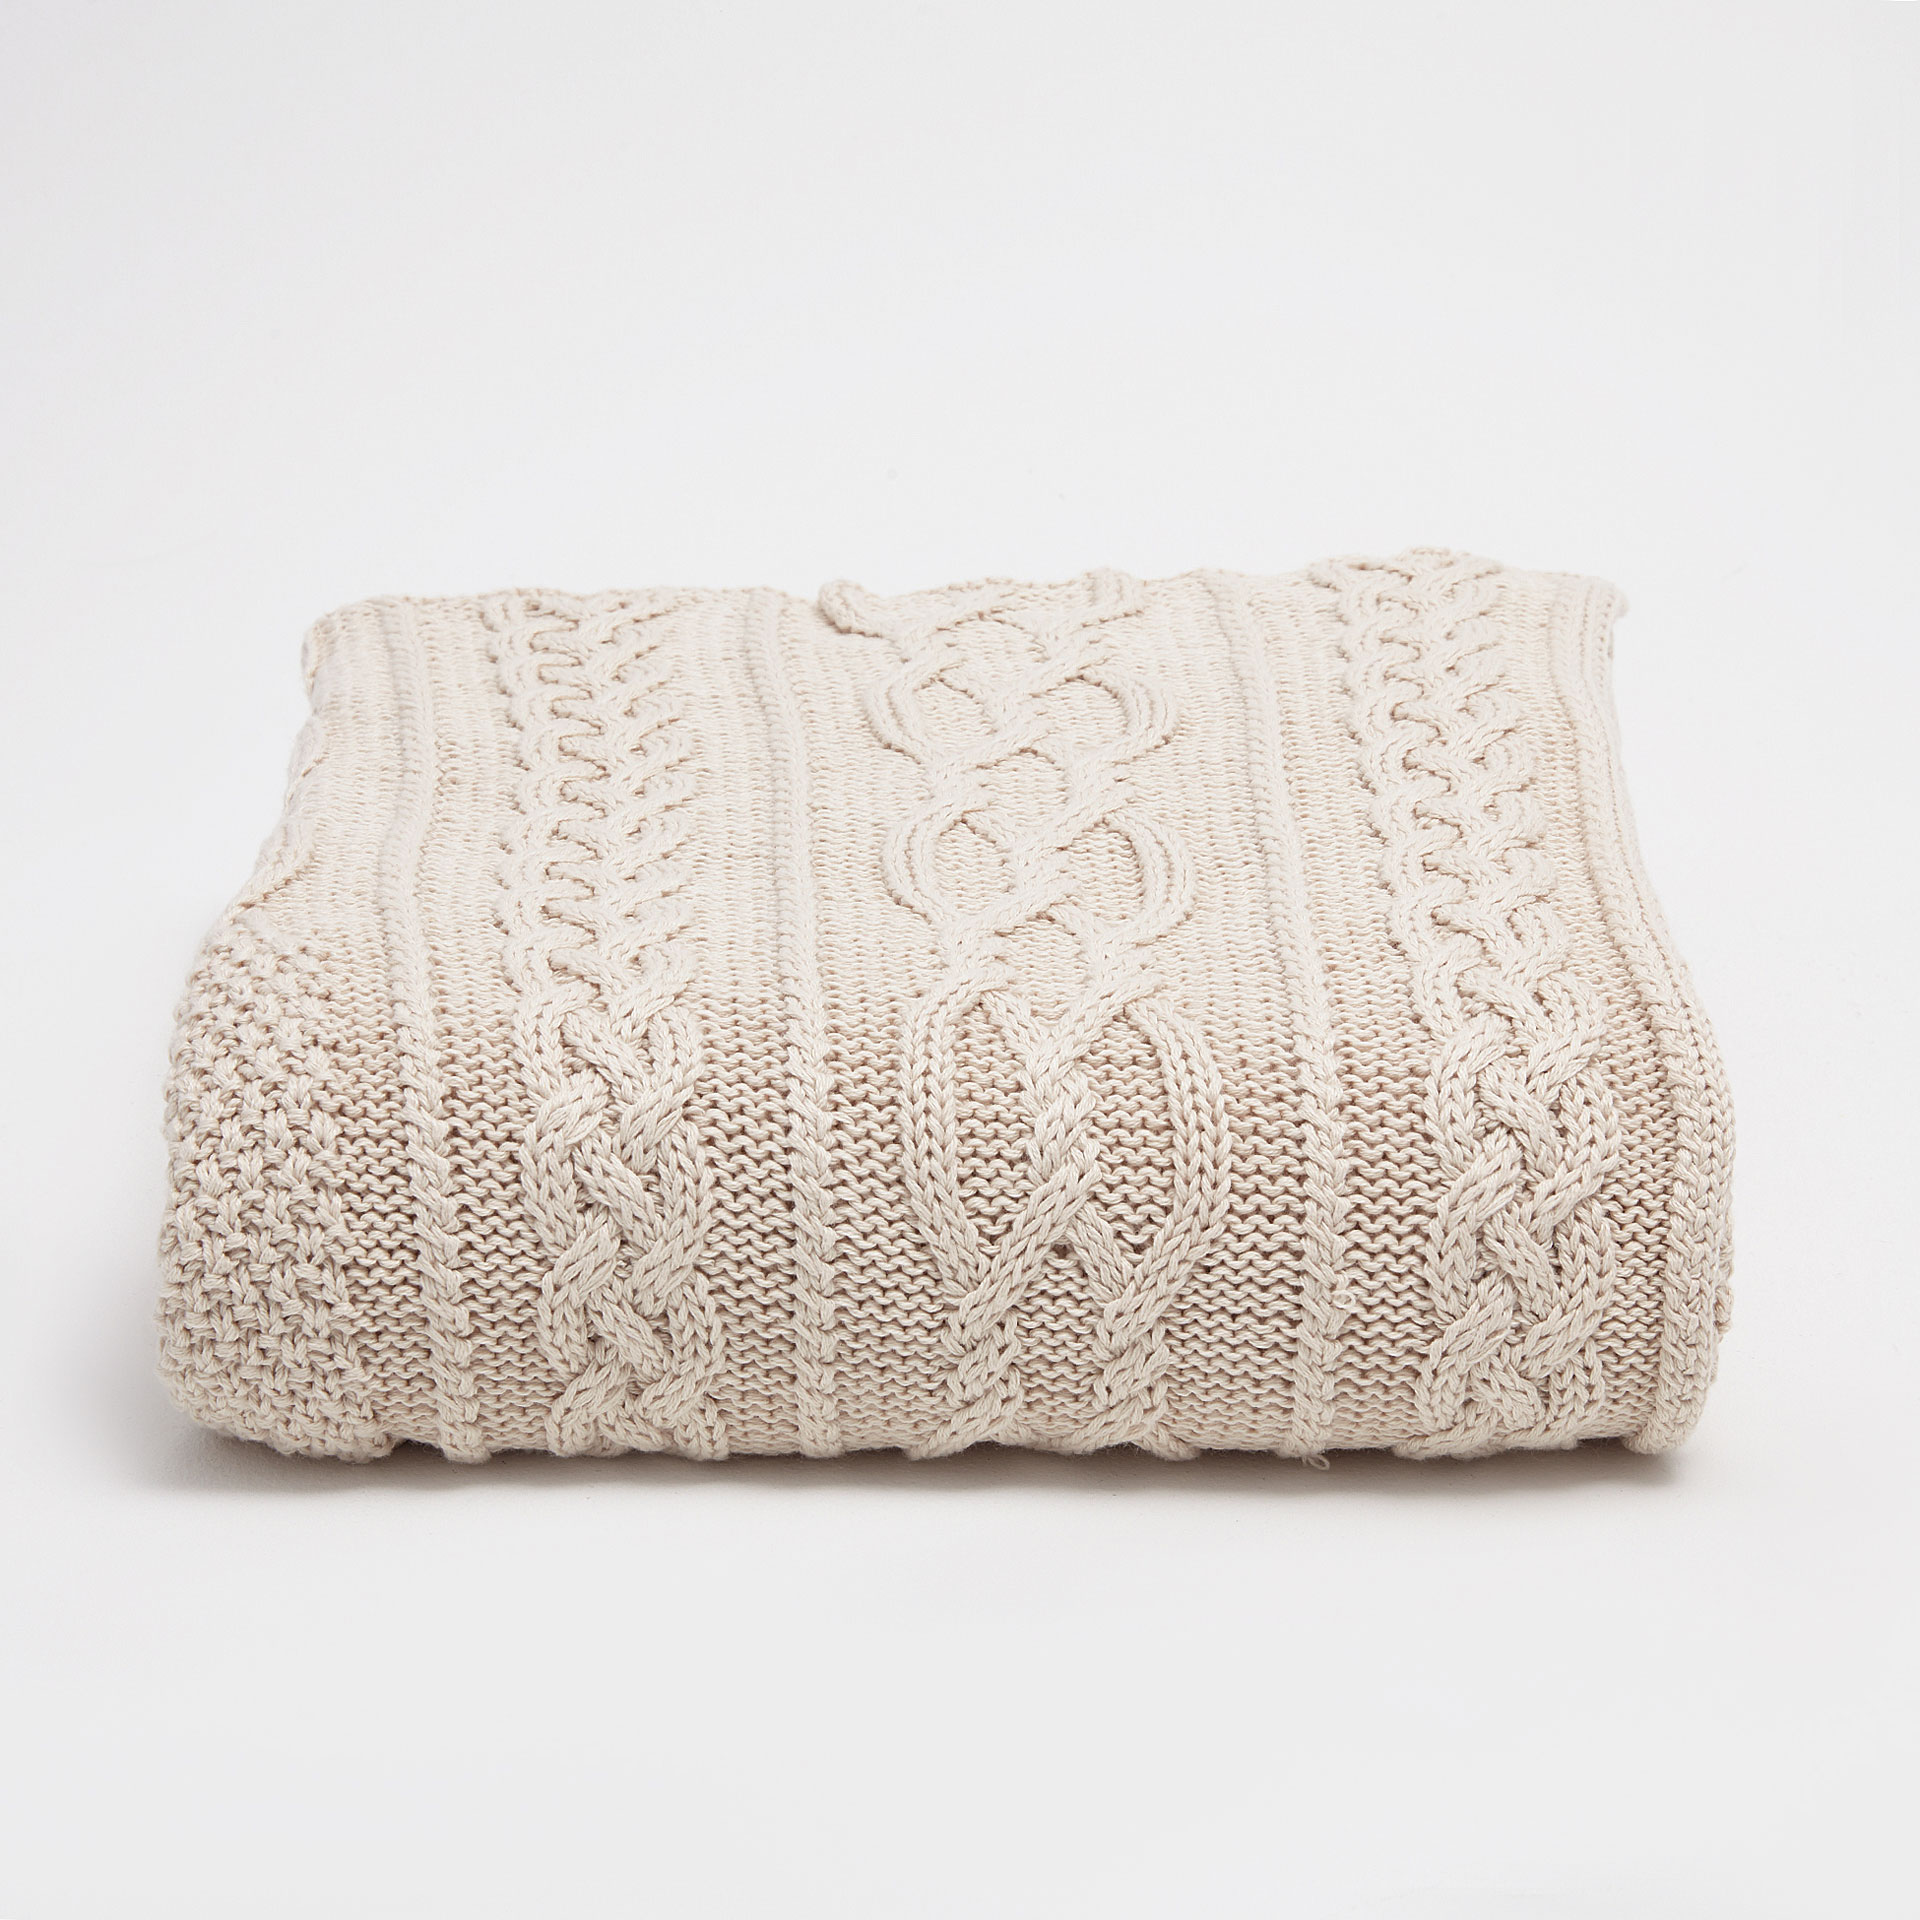 image 2 of the product knit blanket with a cableknit border - Cable Knit Throw